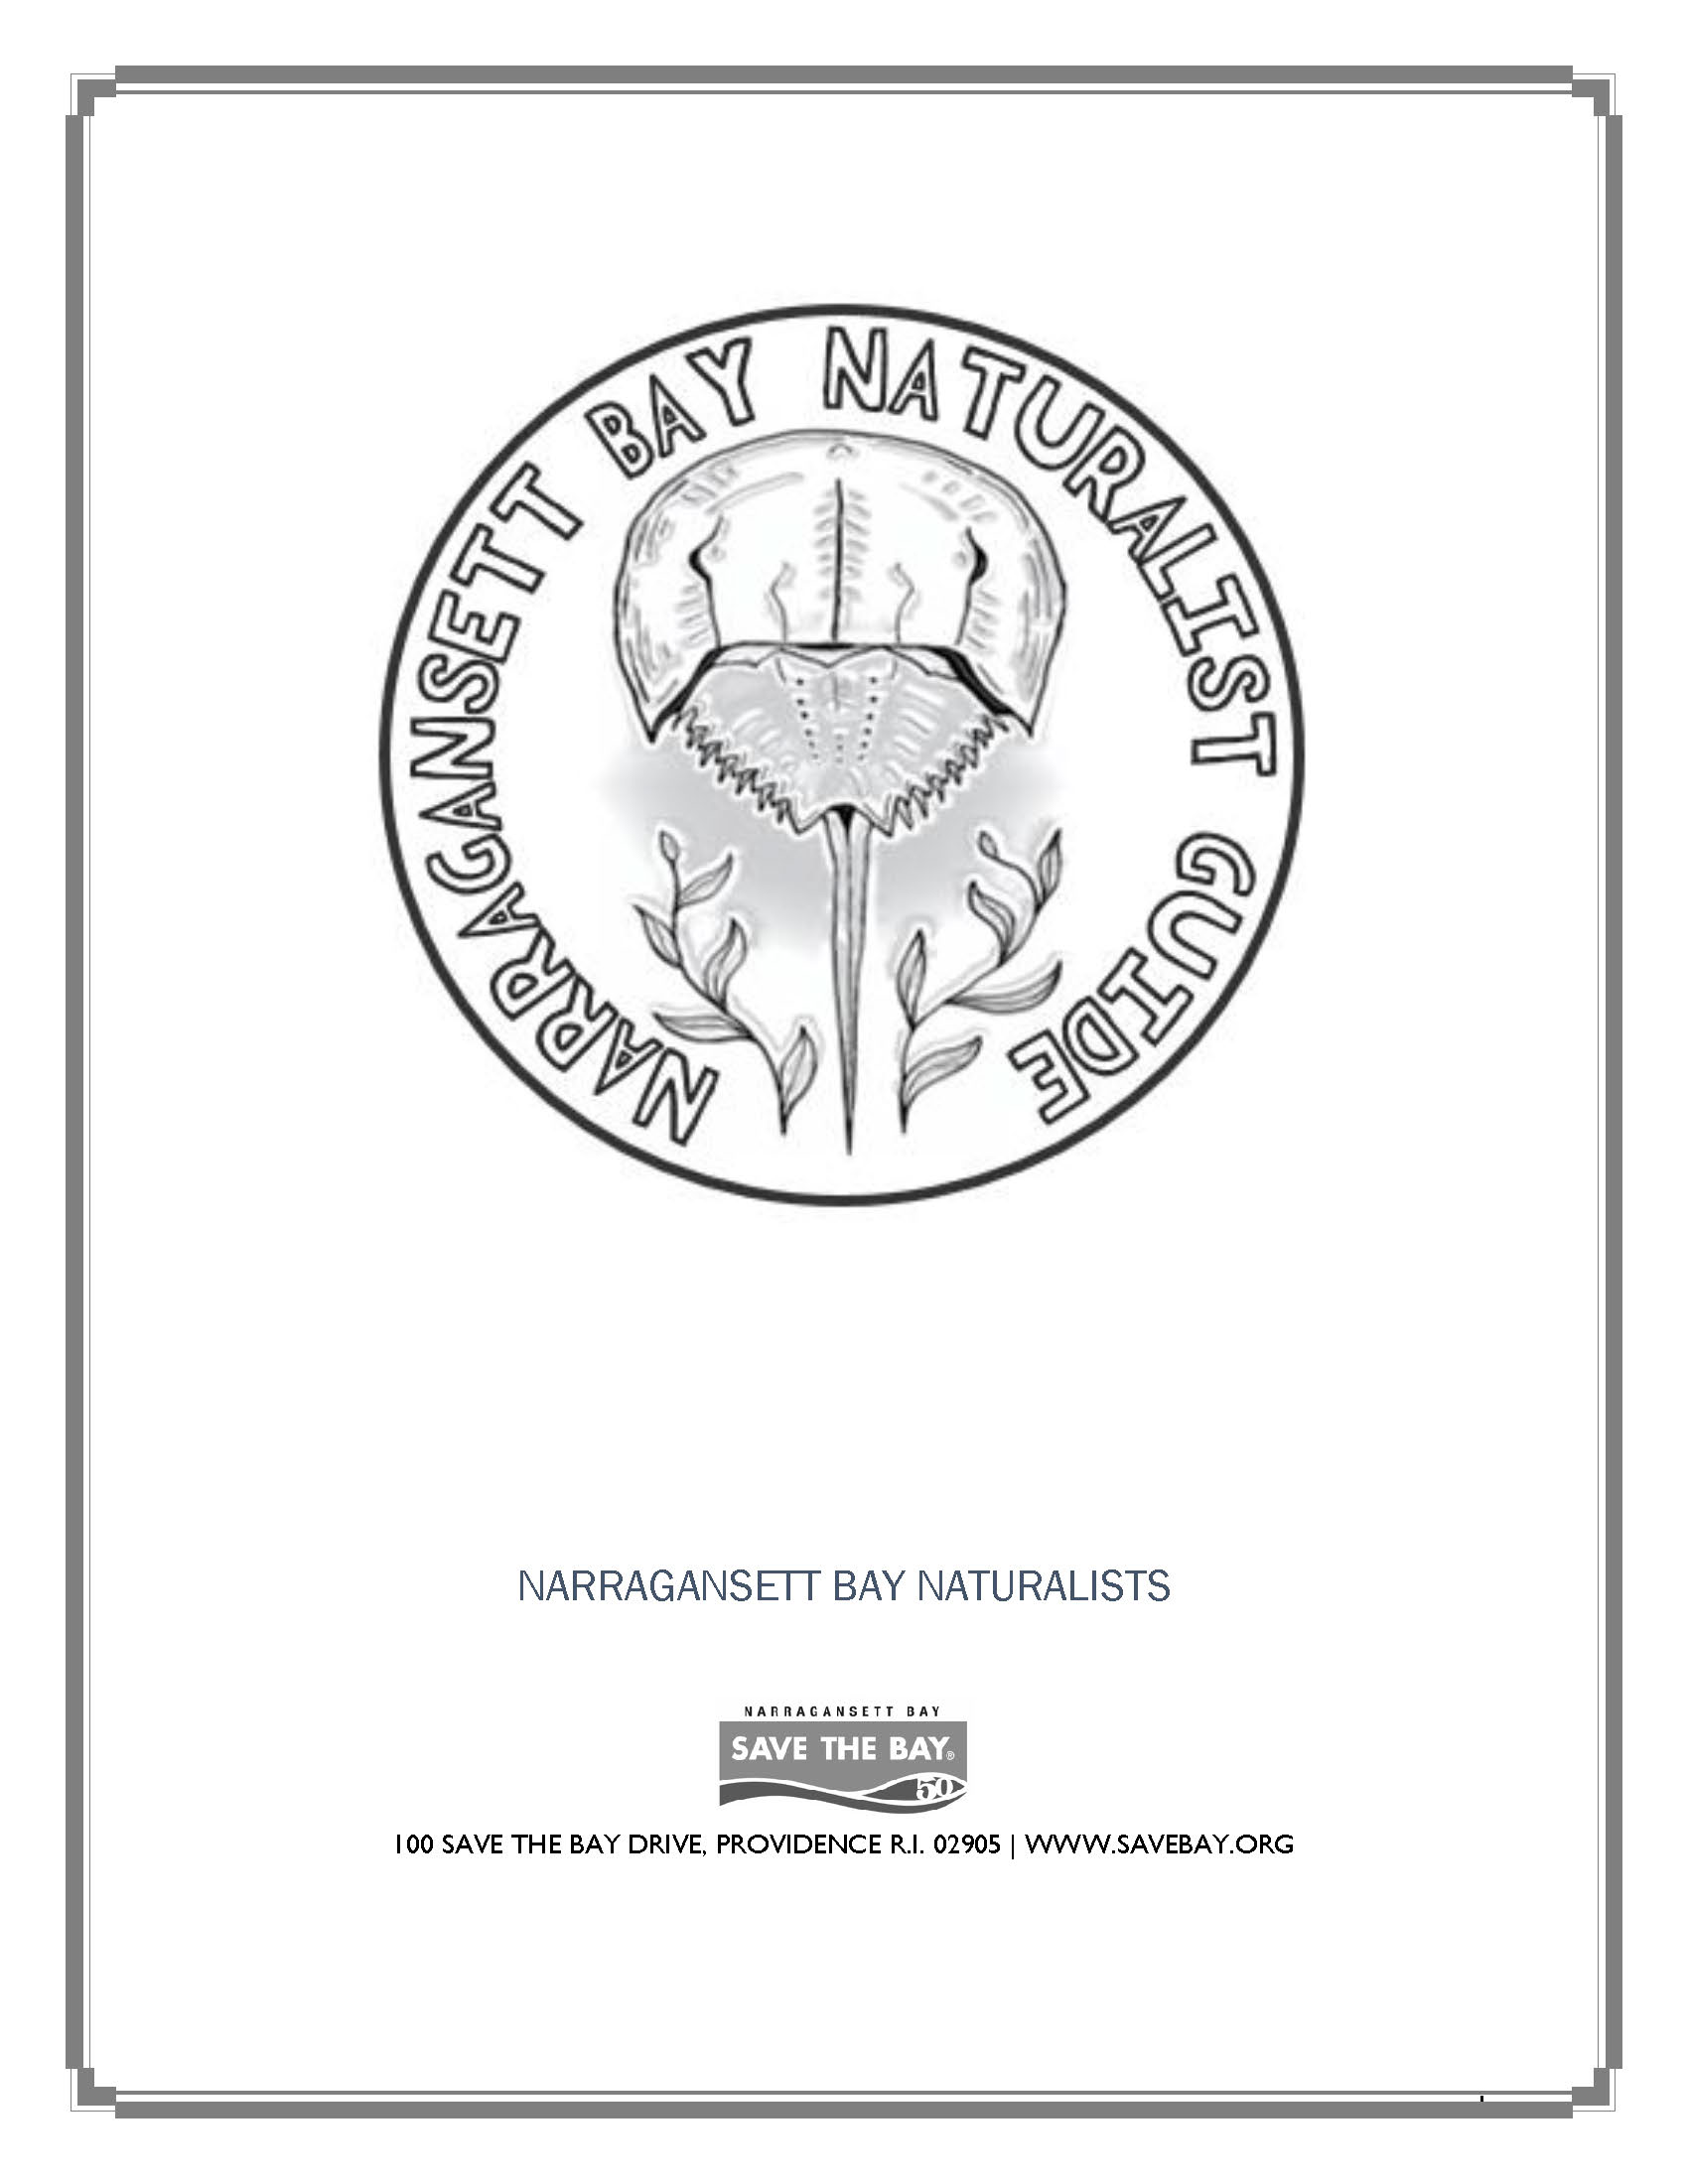 The cover of the Narragansett Bay Naturalist Guide